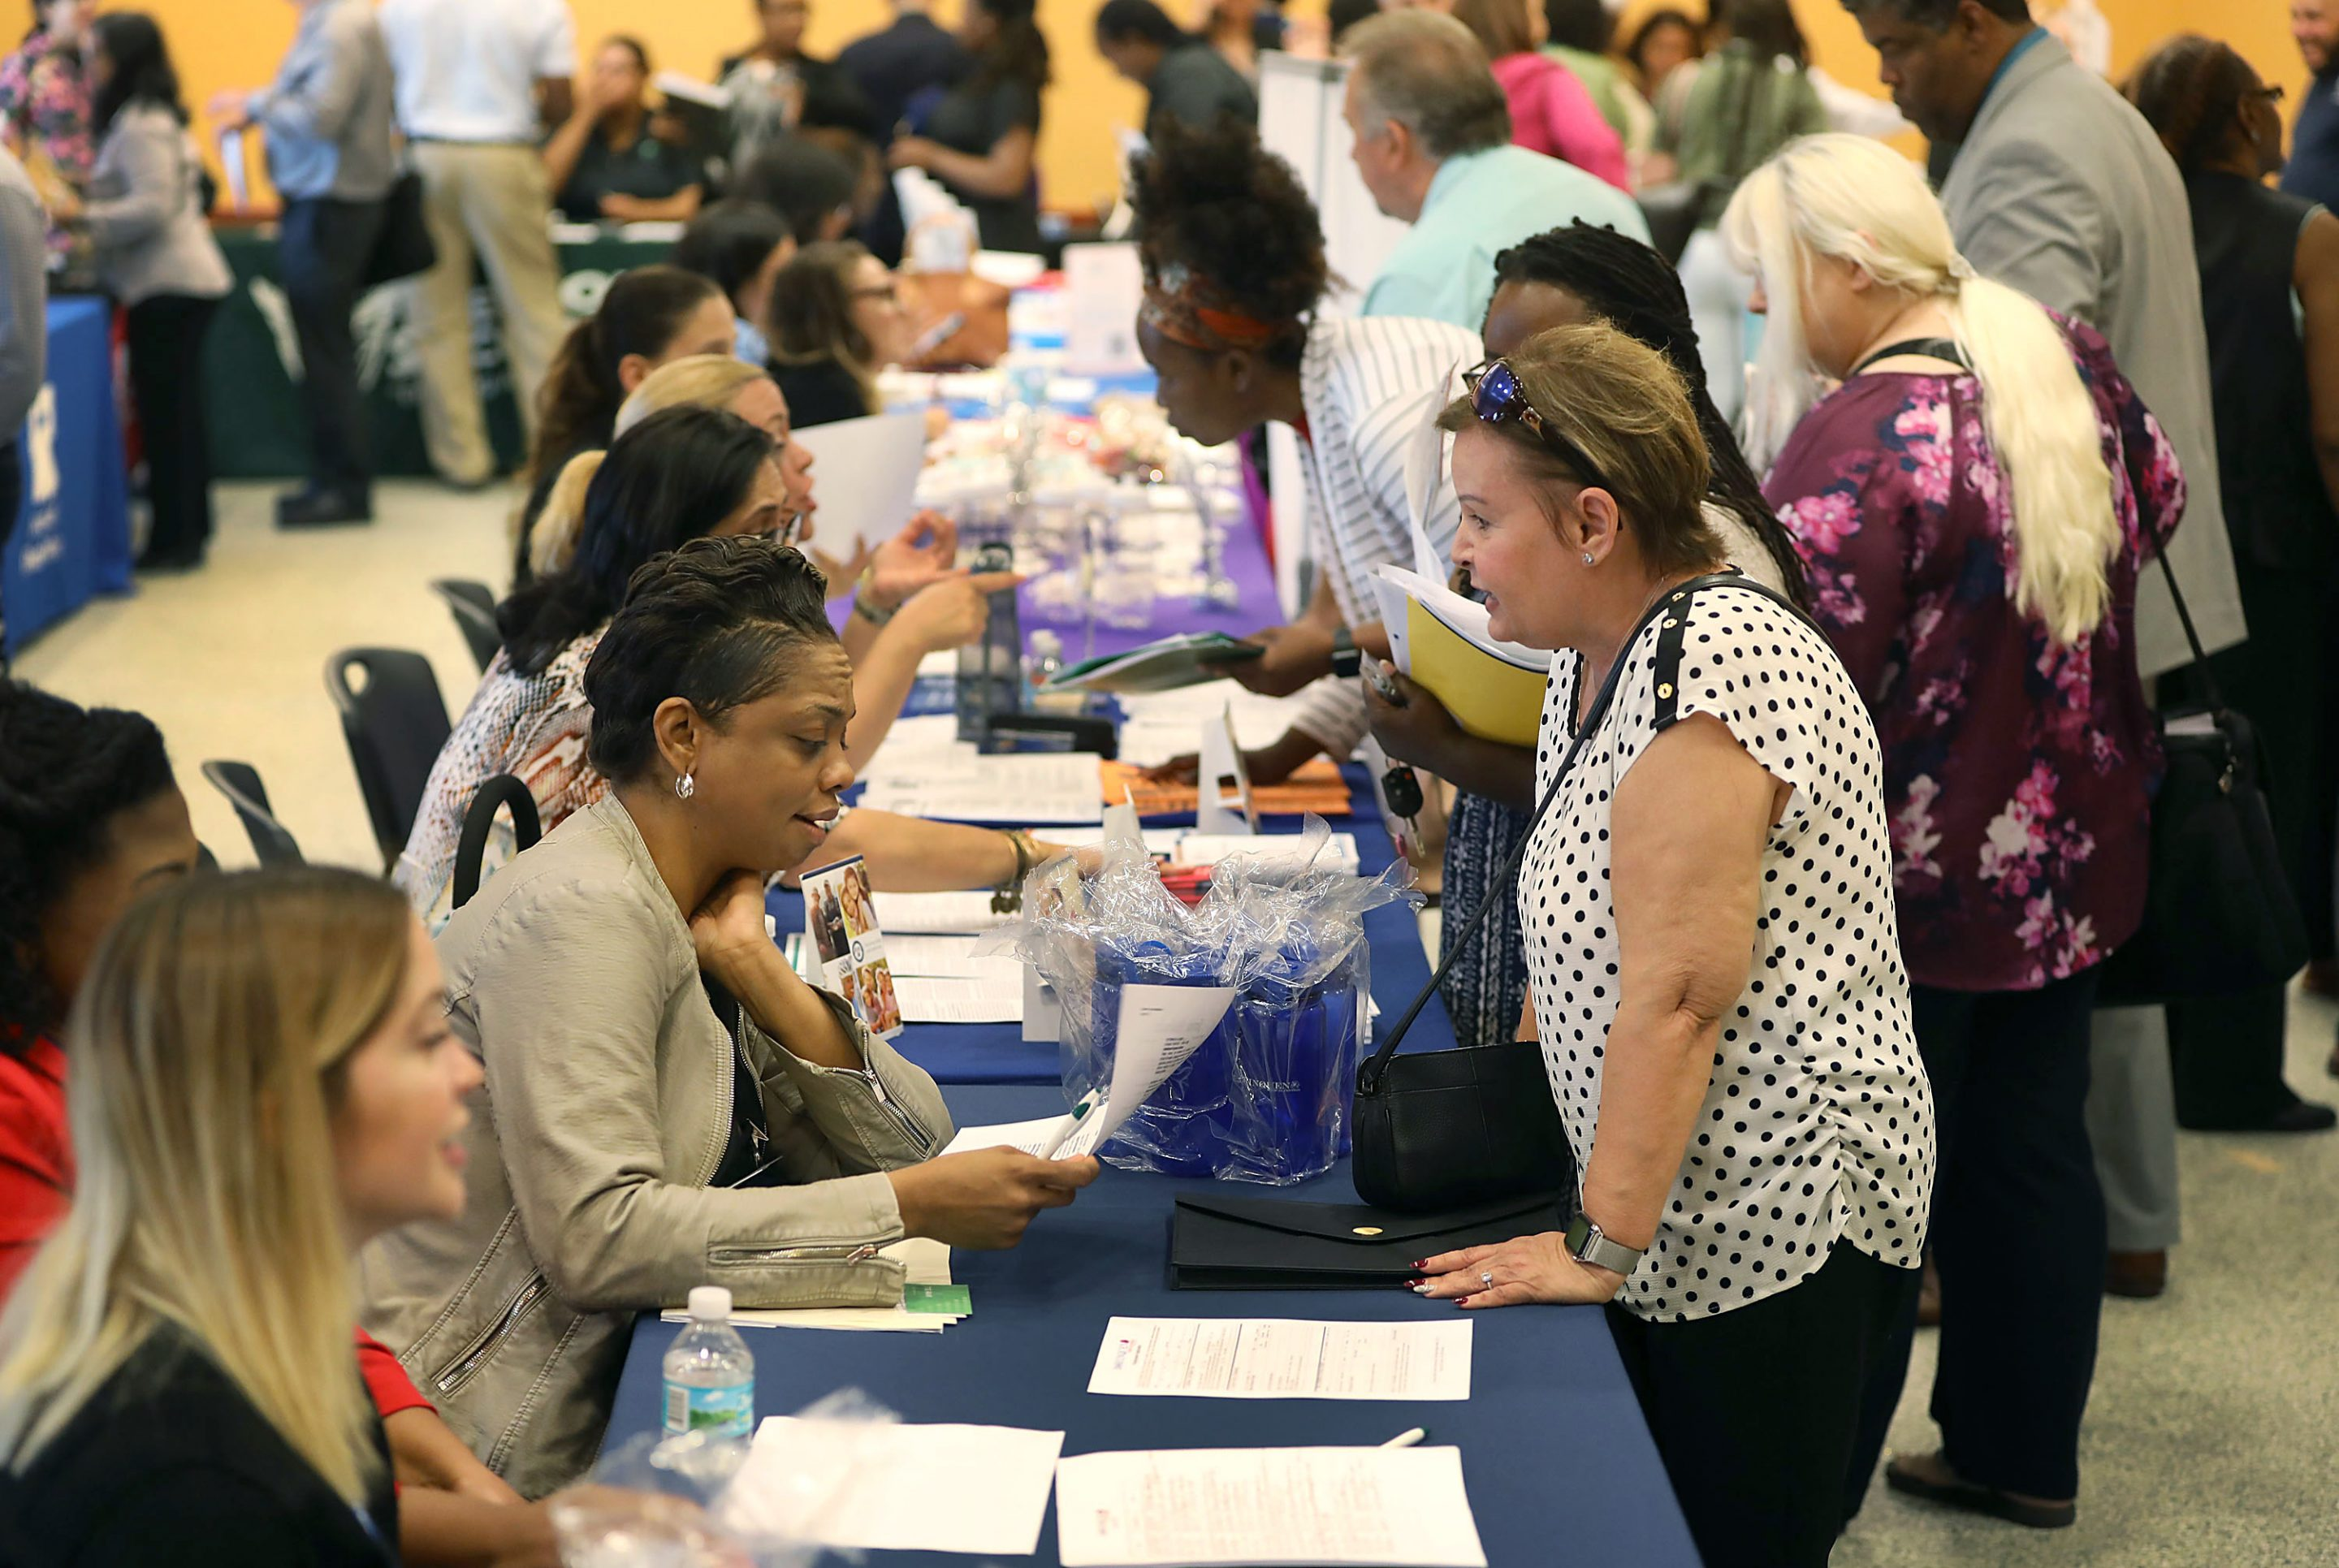 people at a job fair 2019